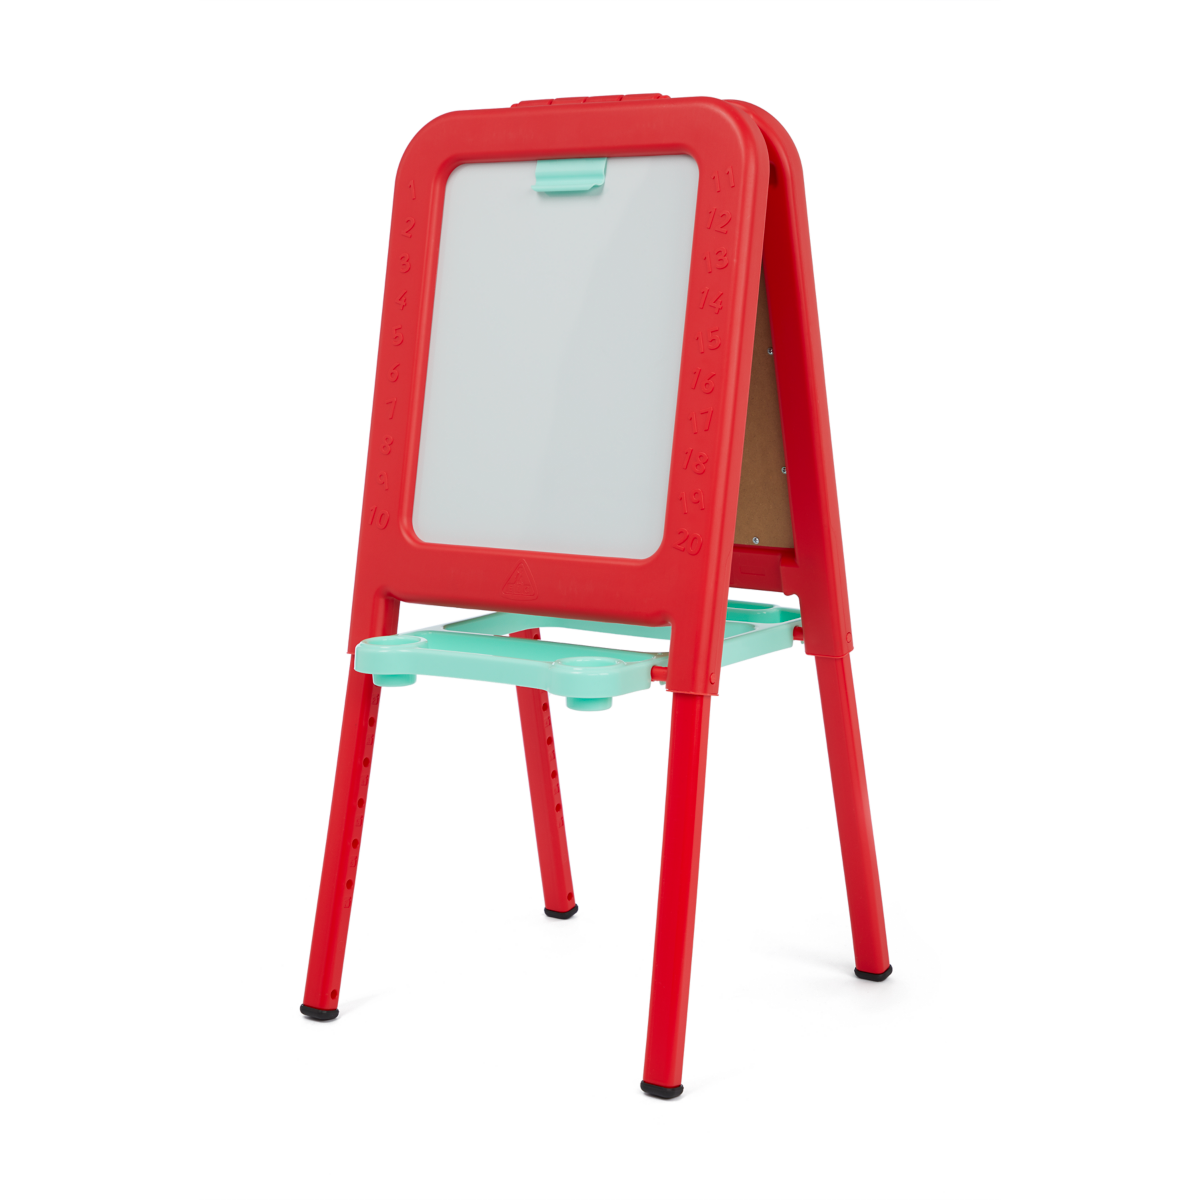 Early Learning Centre Extendable Double-Sided Easel from Early Learning Center